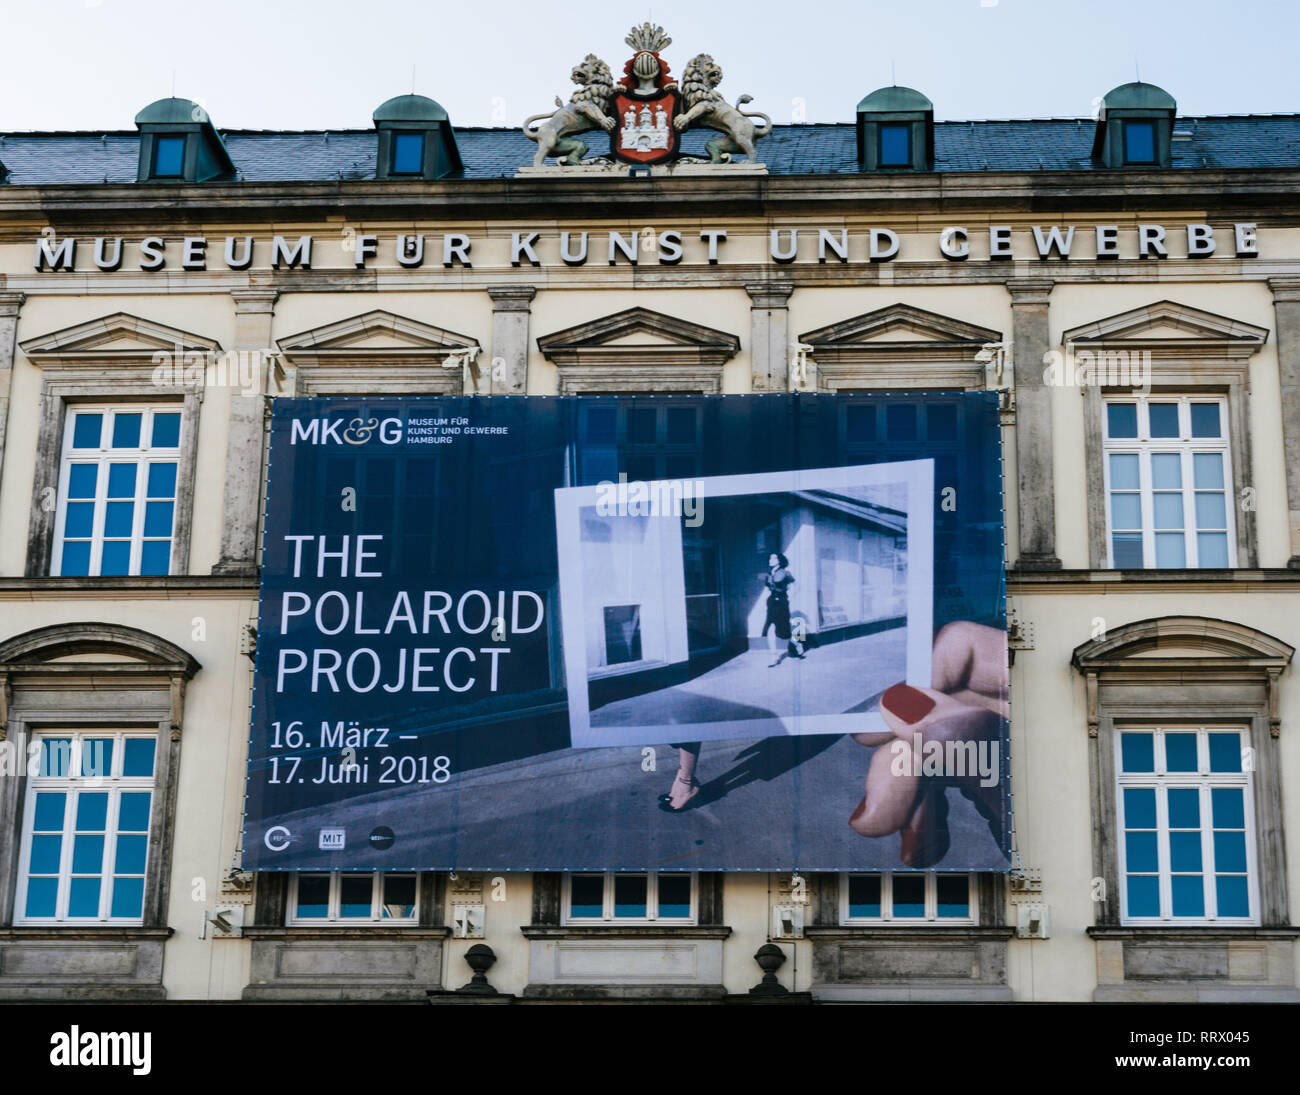 Museum Für Kunst Und Gewerbe Hamburg, Germany - Mar 20, 2018: Museum Fur Kunst Und Gewerbe Facade With The Polaroid Project Exhibition Stock Photo - Alamy